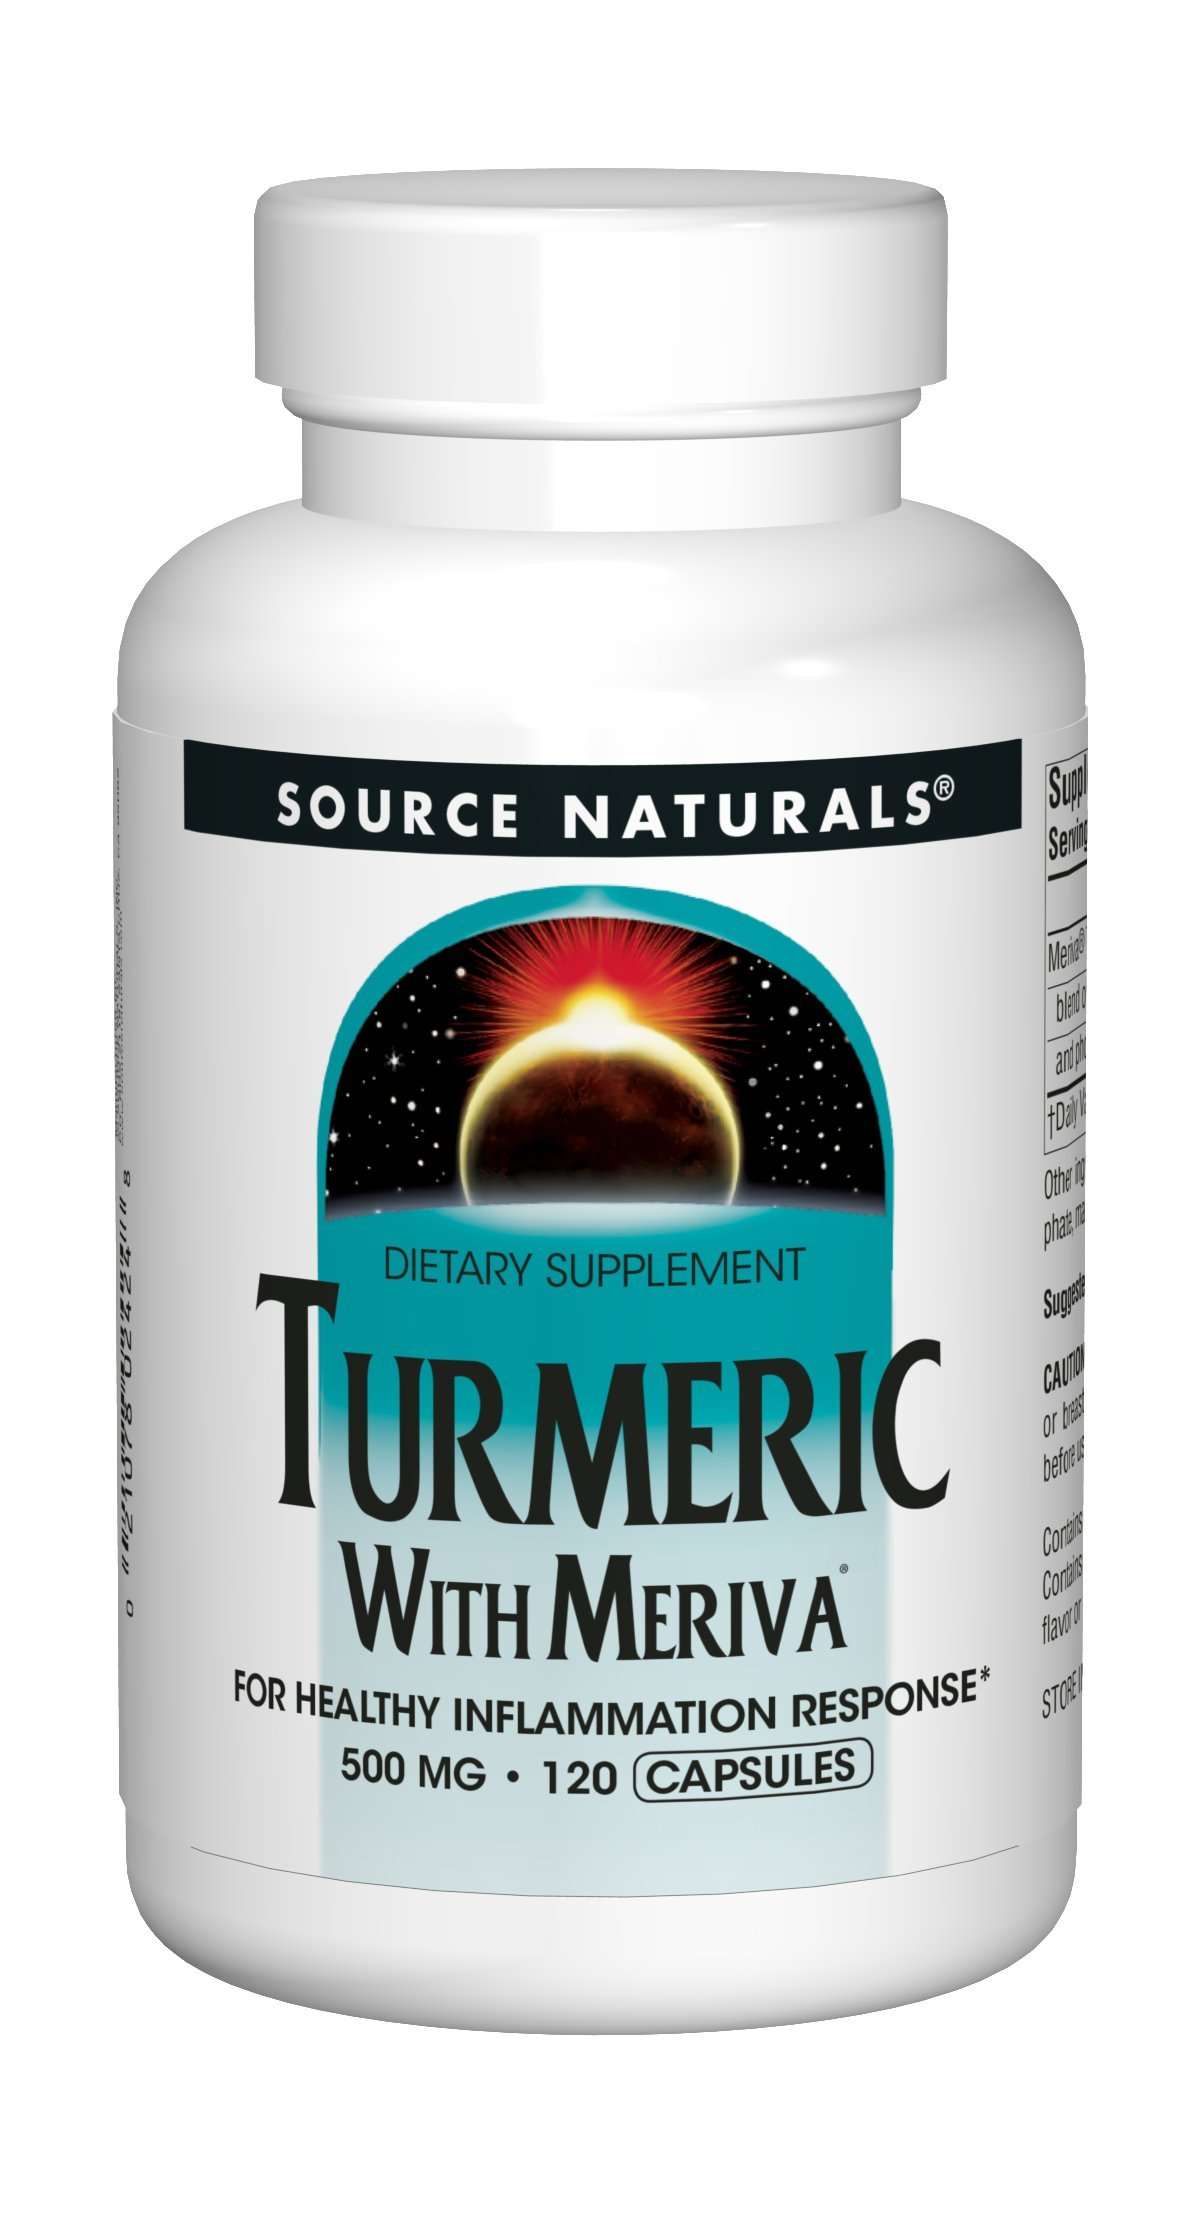 Source Naturals Turmeric With Meriva 500mg For Healthy Inflammation Response Joint Pain Relief - Maximum Phytosome Increased Absorption Anti-Inflammatory & Liver Detoxication - 120 Capsules